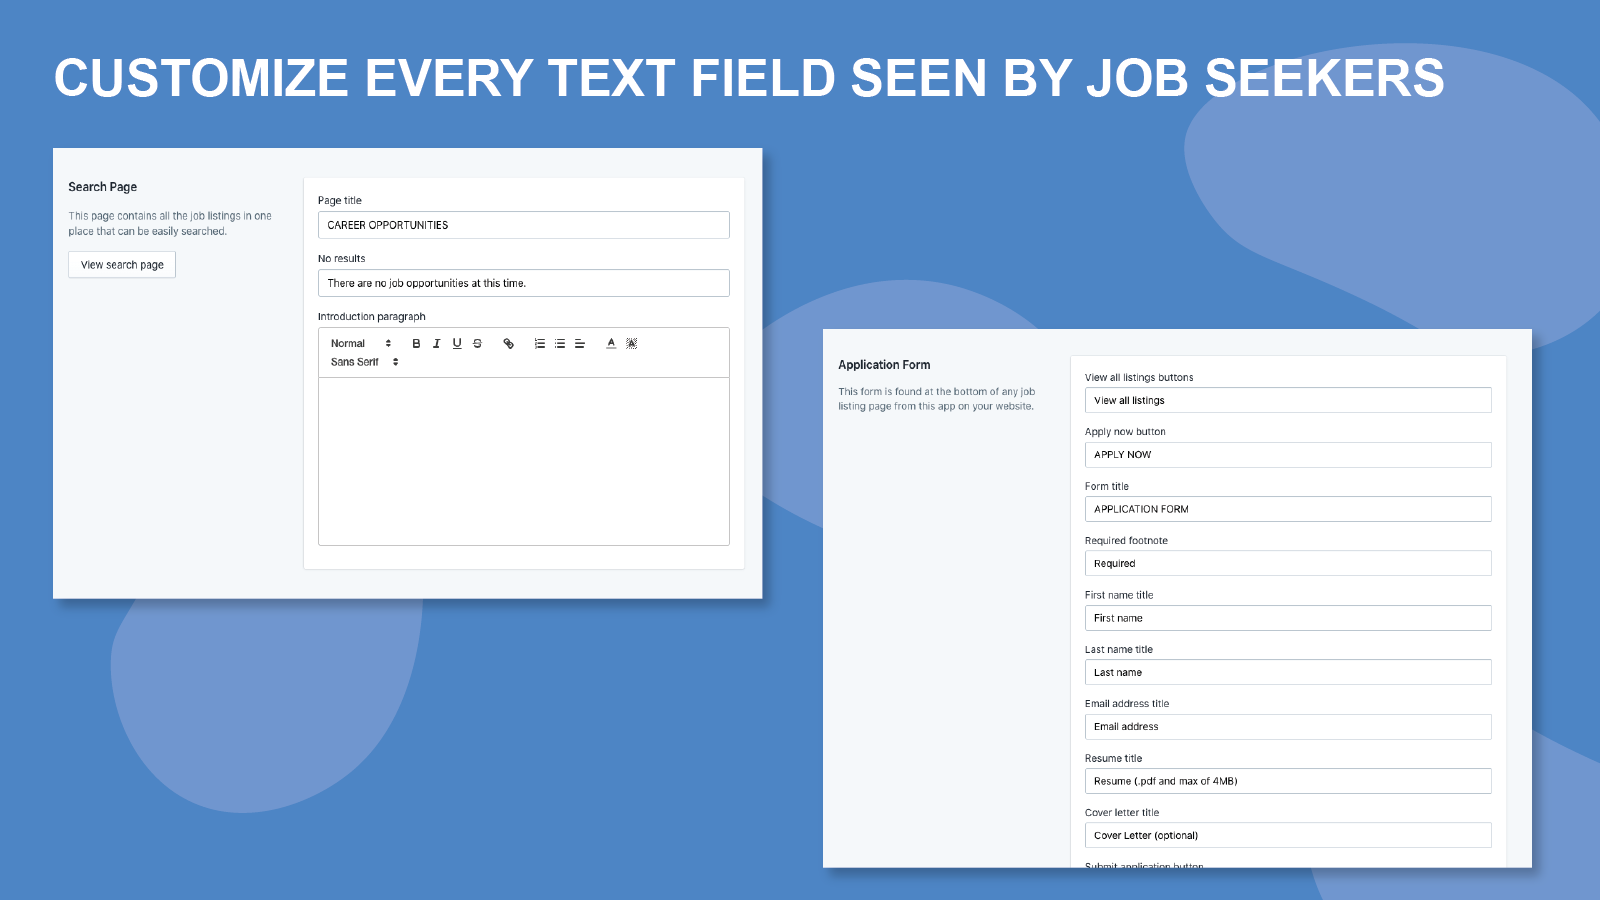 Customize every text field